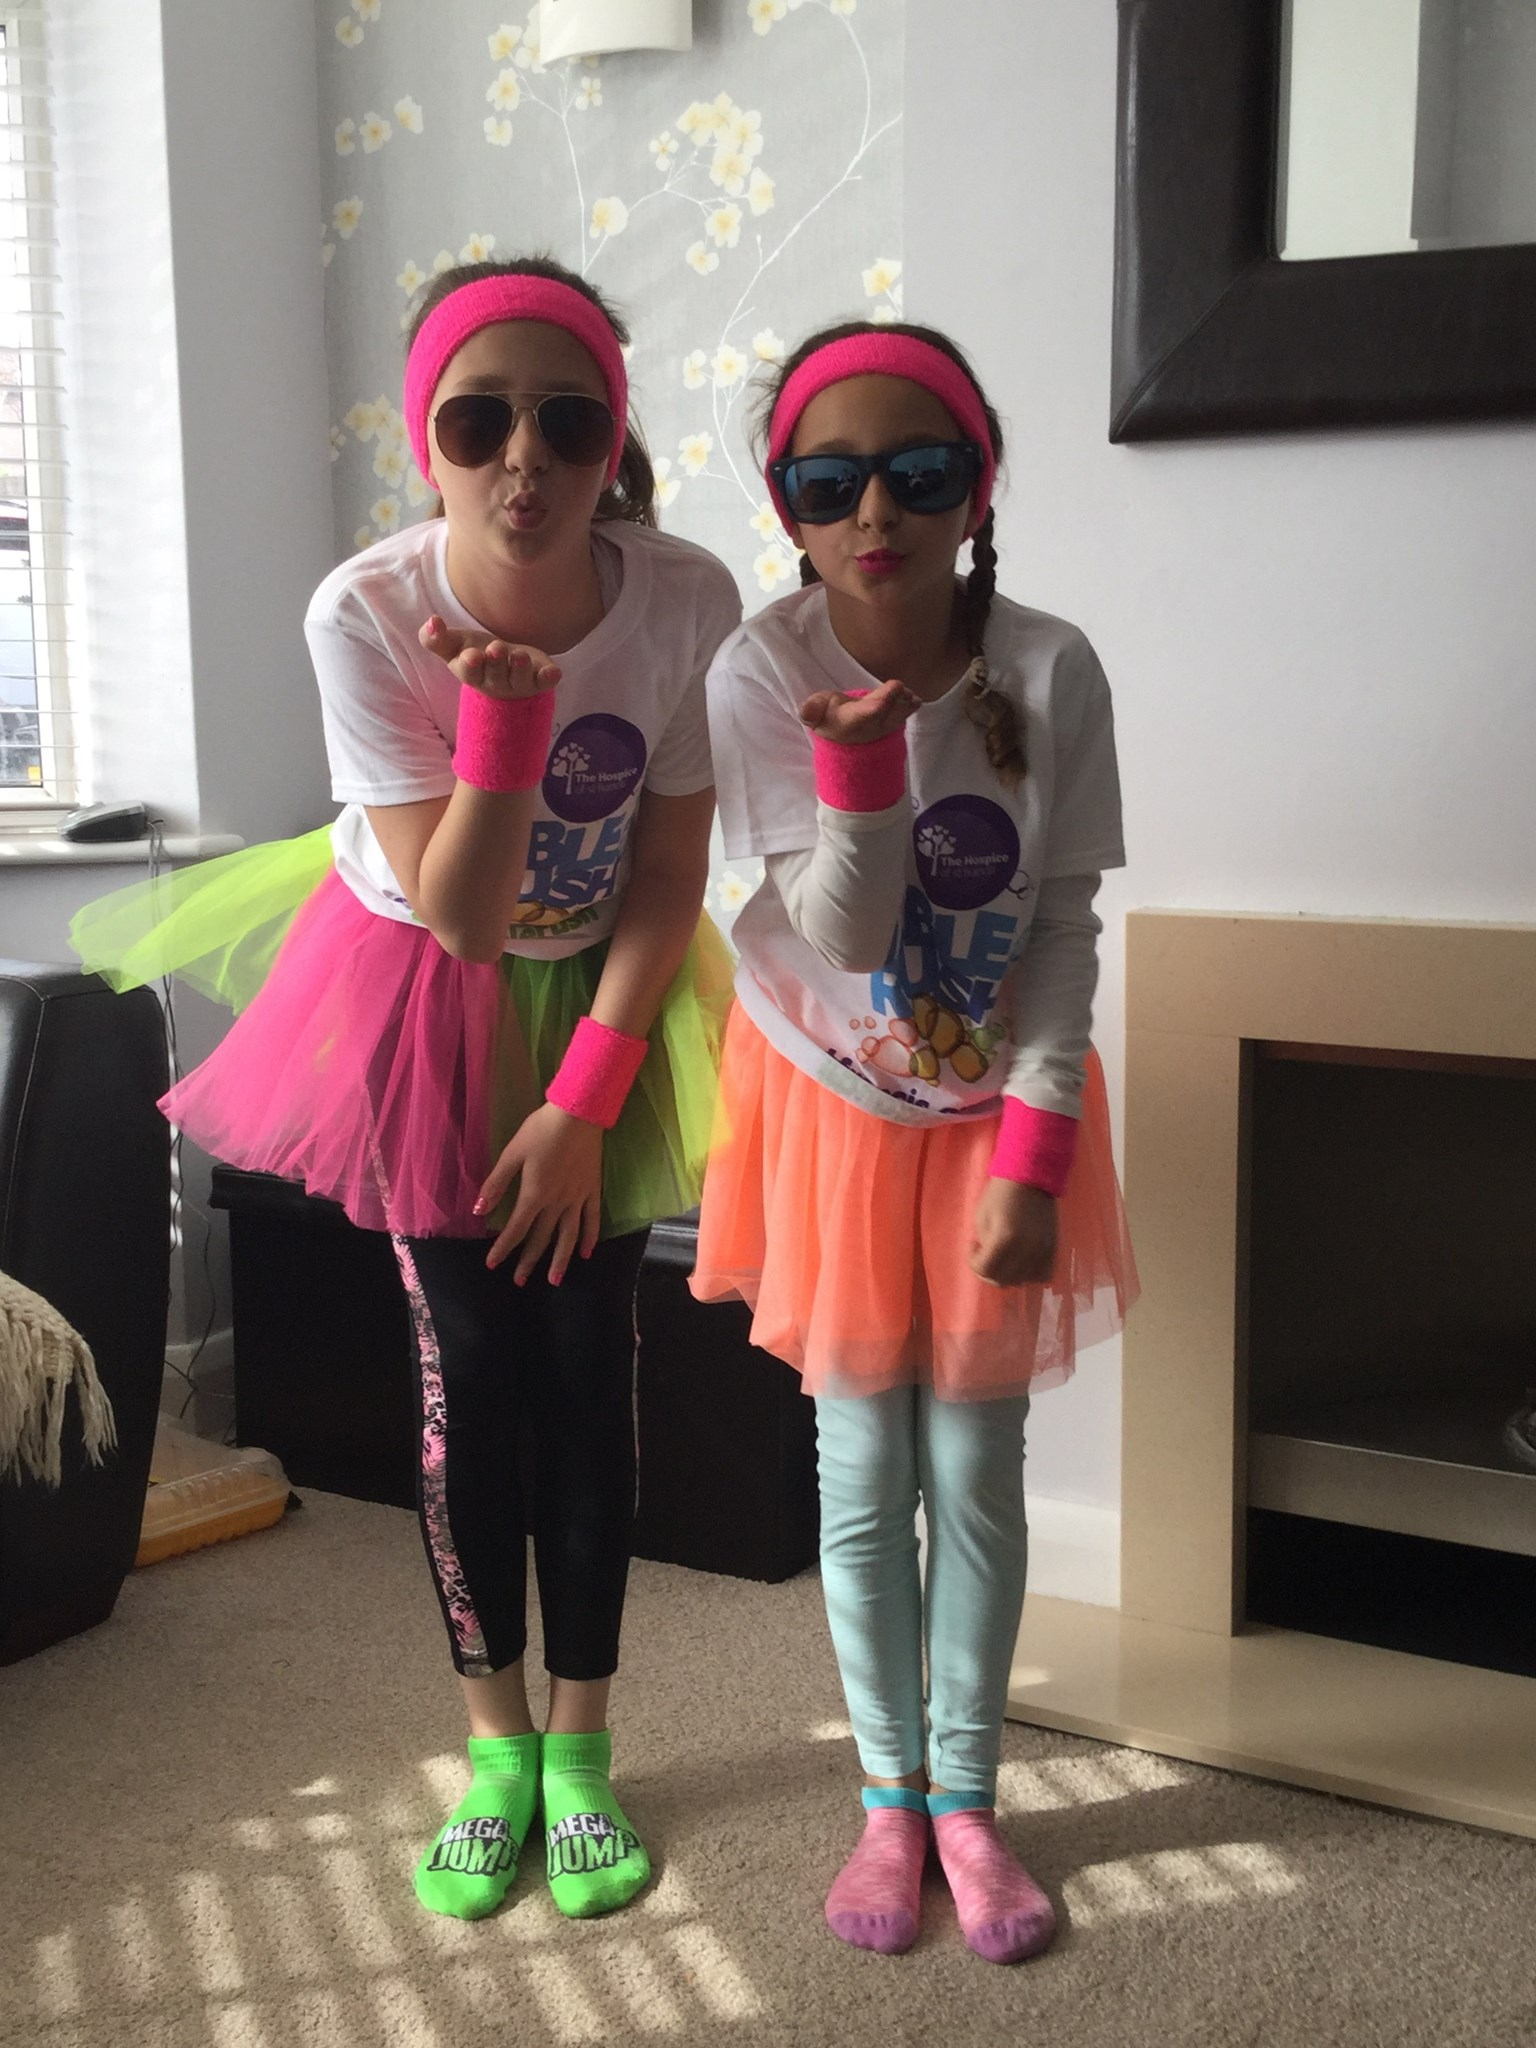 We are running the bubble run for you bumps xx